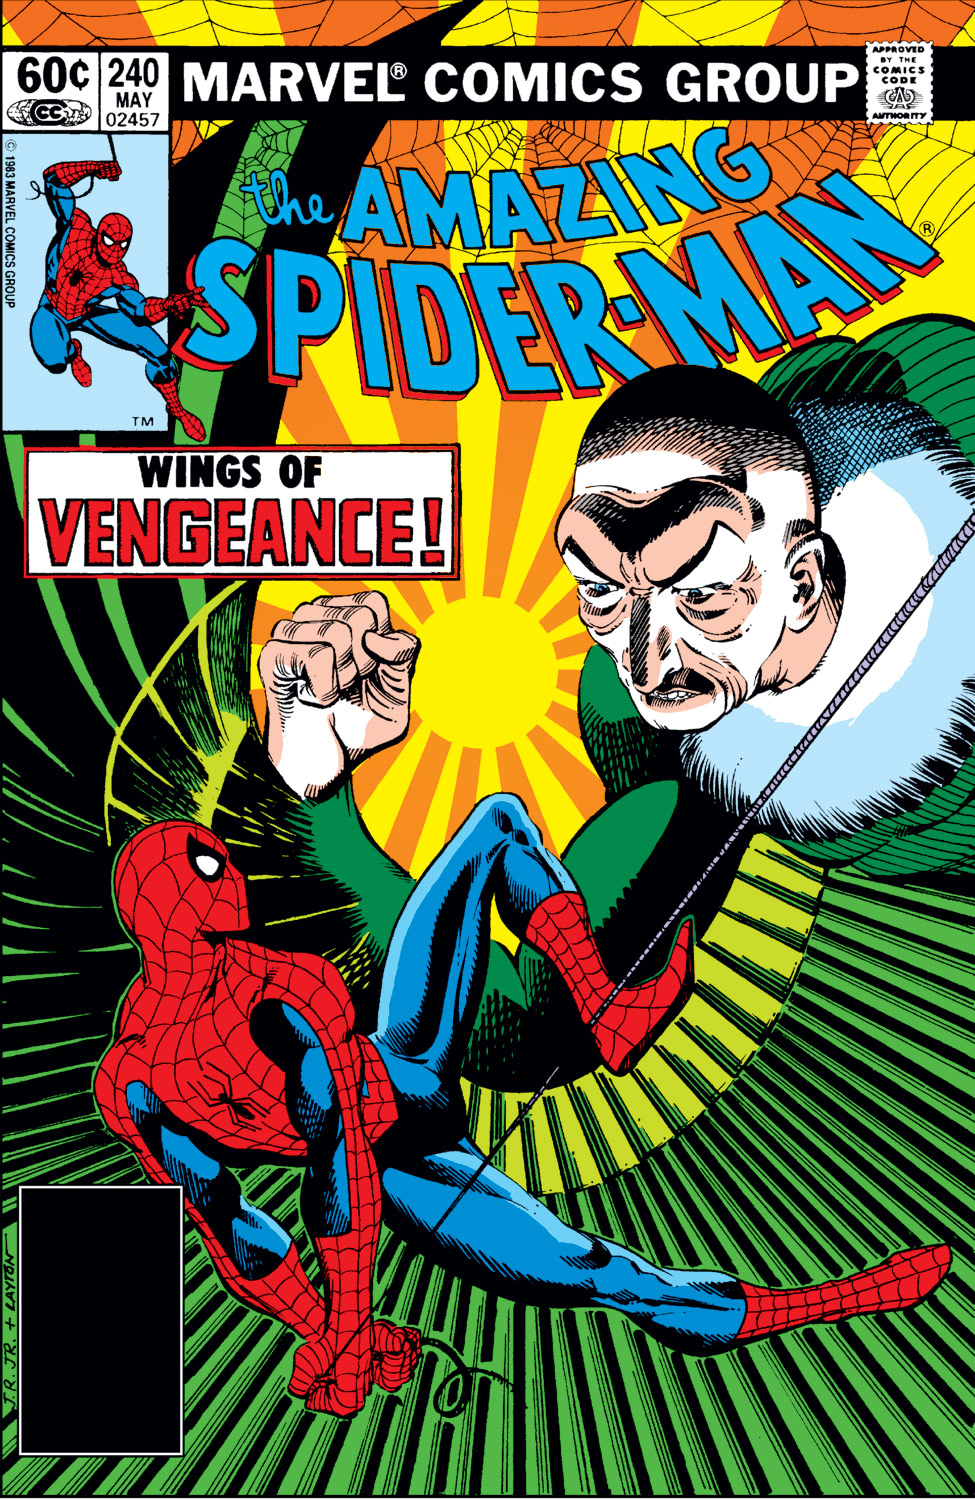 The Amazing Spider-Man (1963) #240